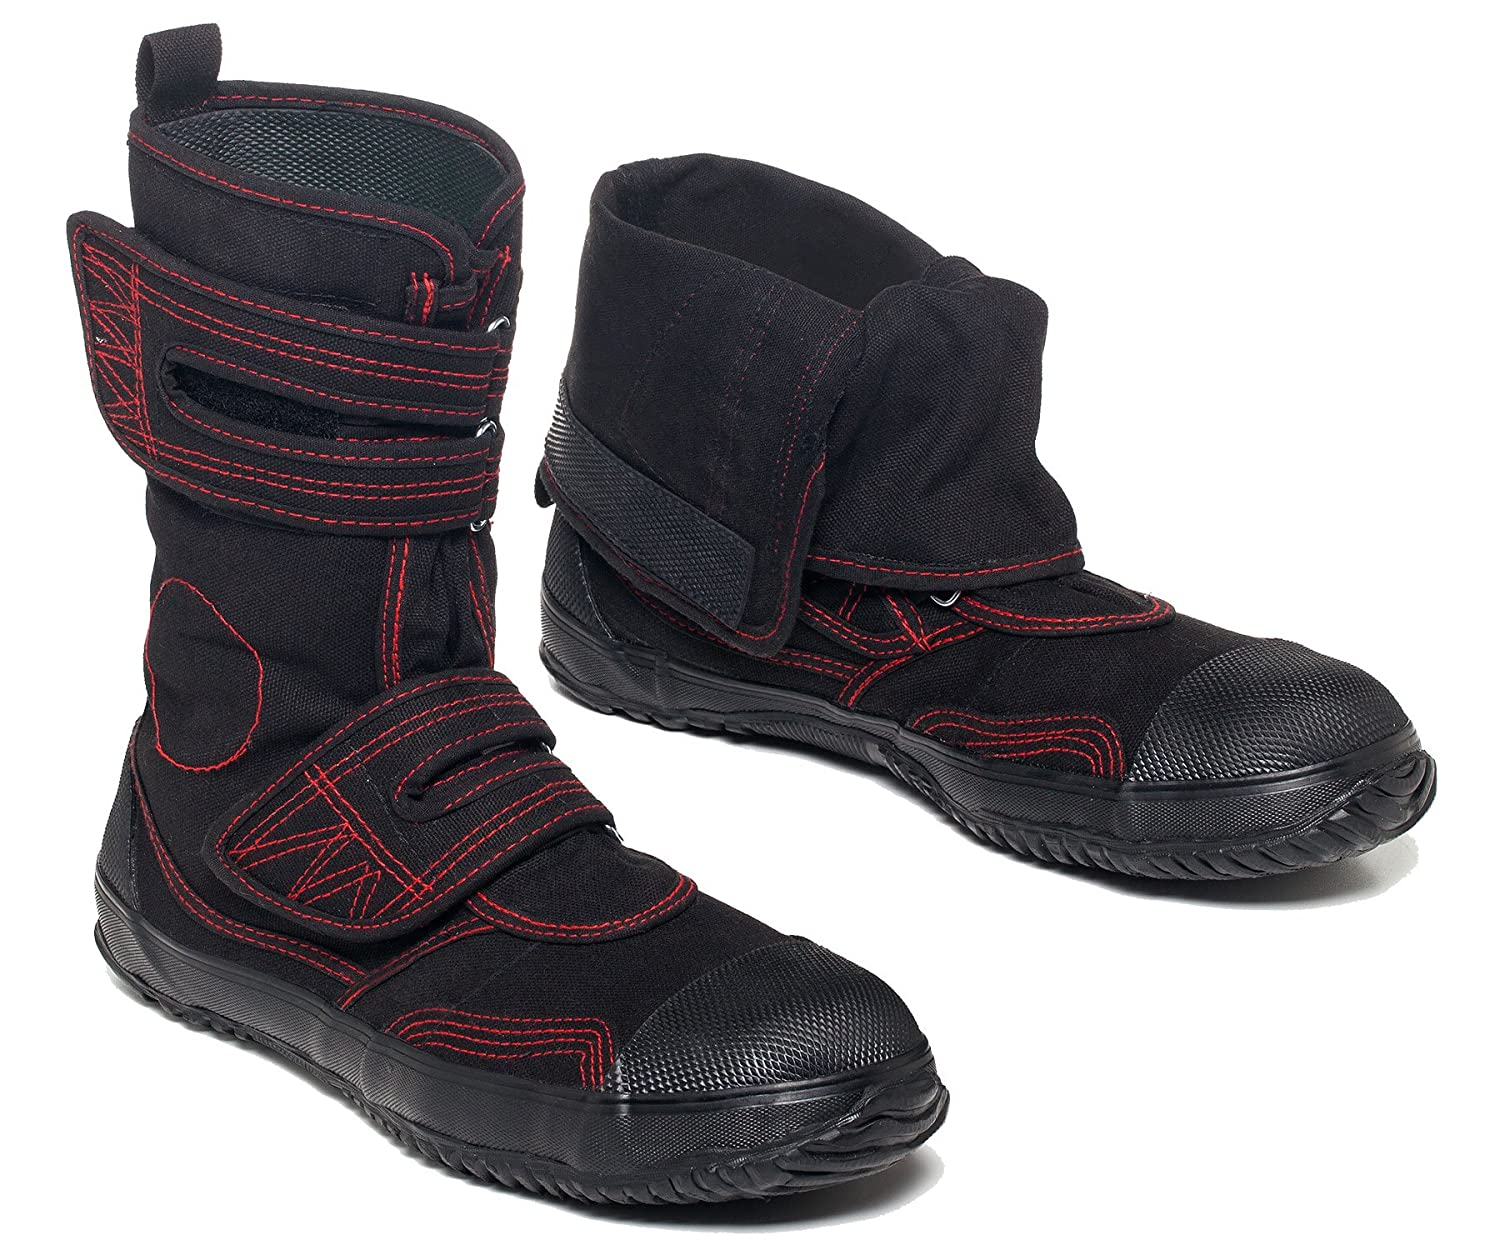 fugu Sa-Me Japanese Vegan Boots, Eco-Friendly Mid-Calf Boots with Rubber Sole B01524RZME USW 8 - 8.5 JP24.5|Red & Black